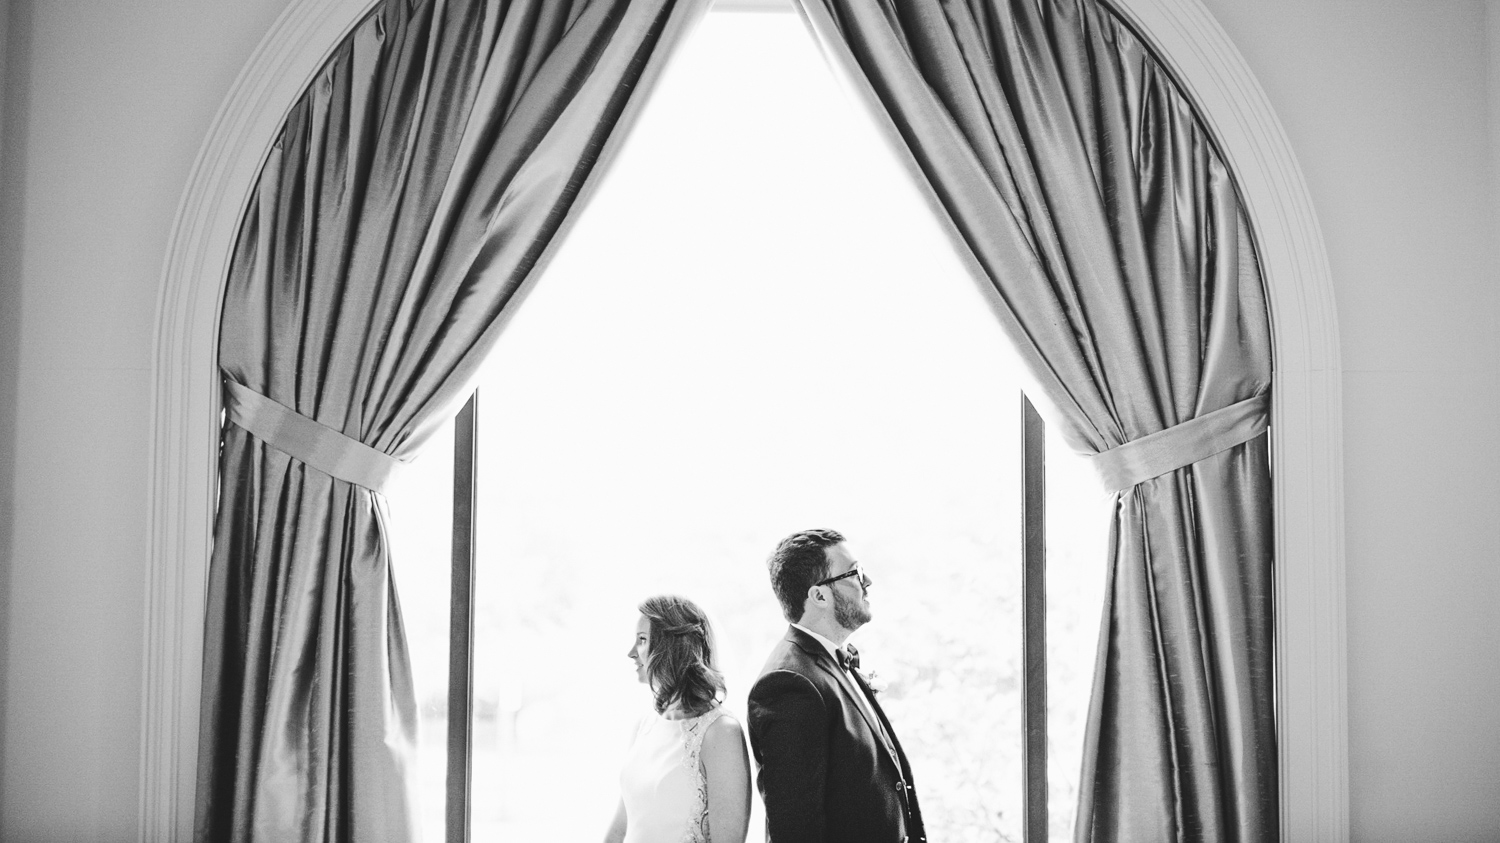 015 - black and white portrait of bride and groom.jpg